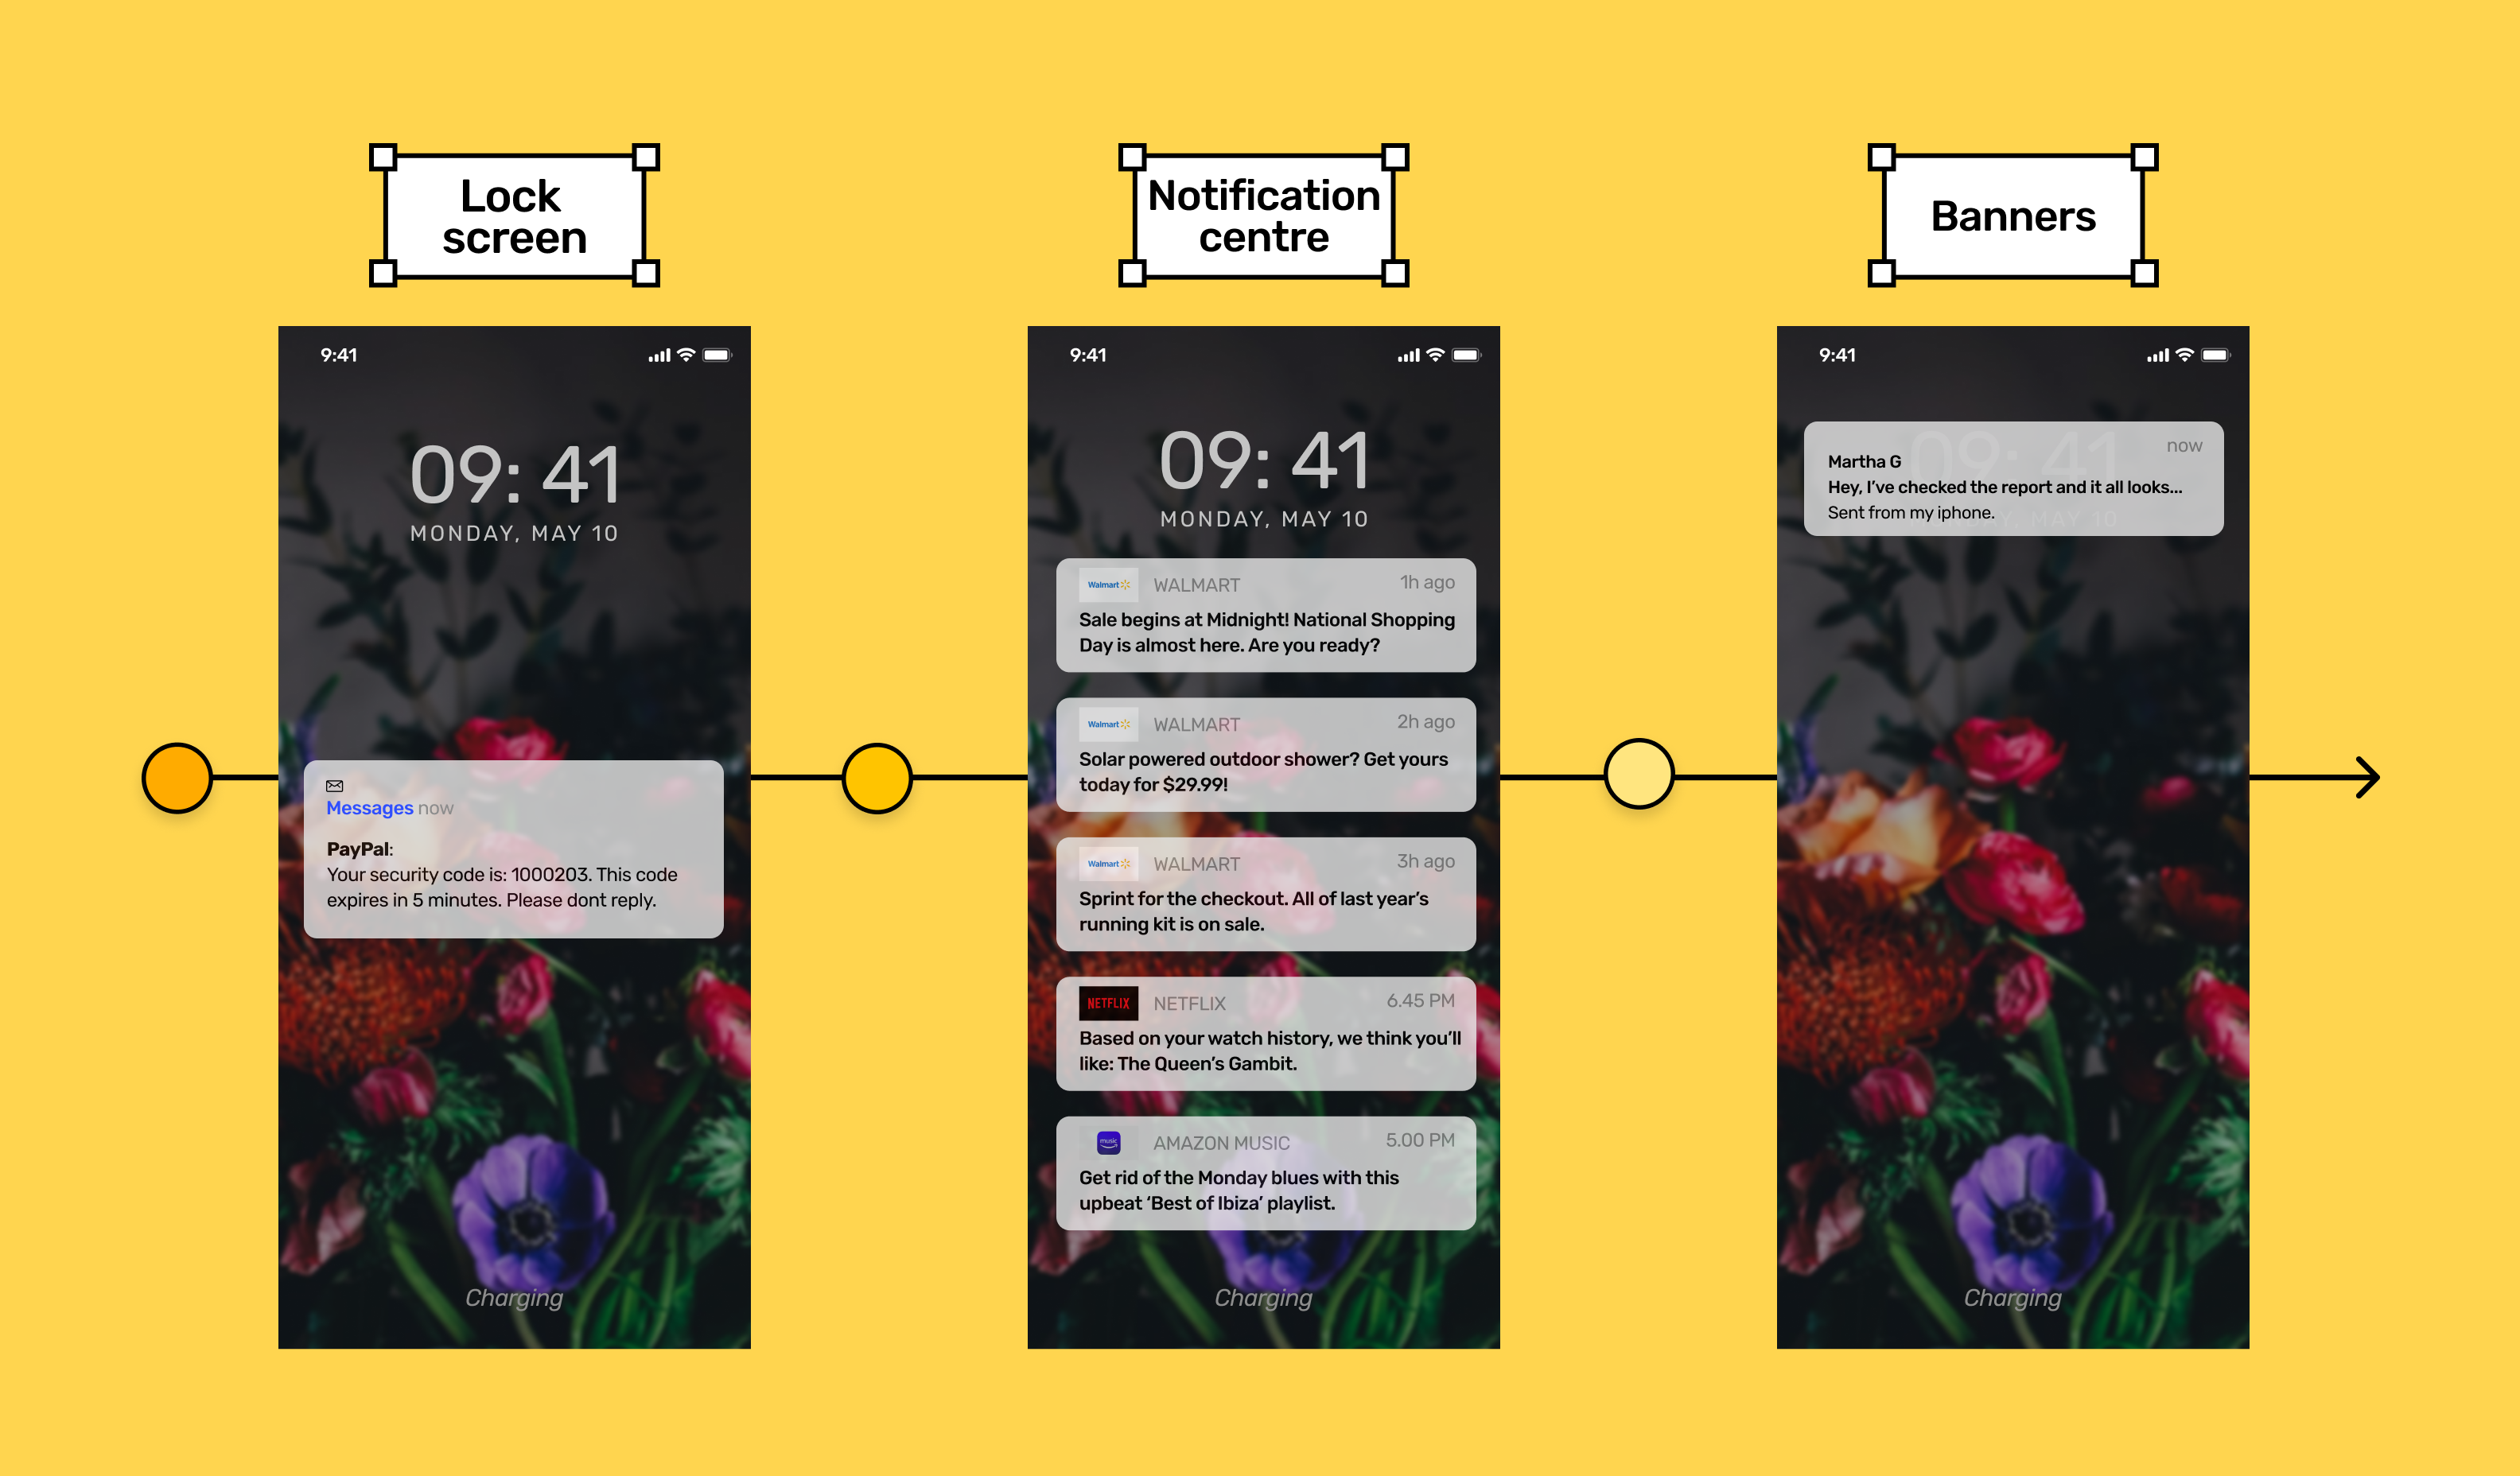 Push notifications on lock screen, notification Centre and banner.